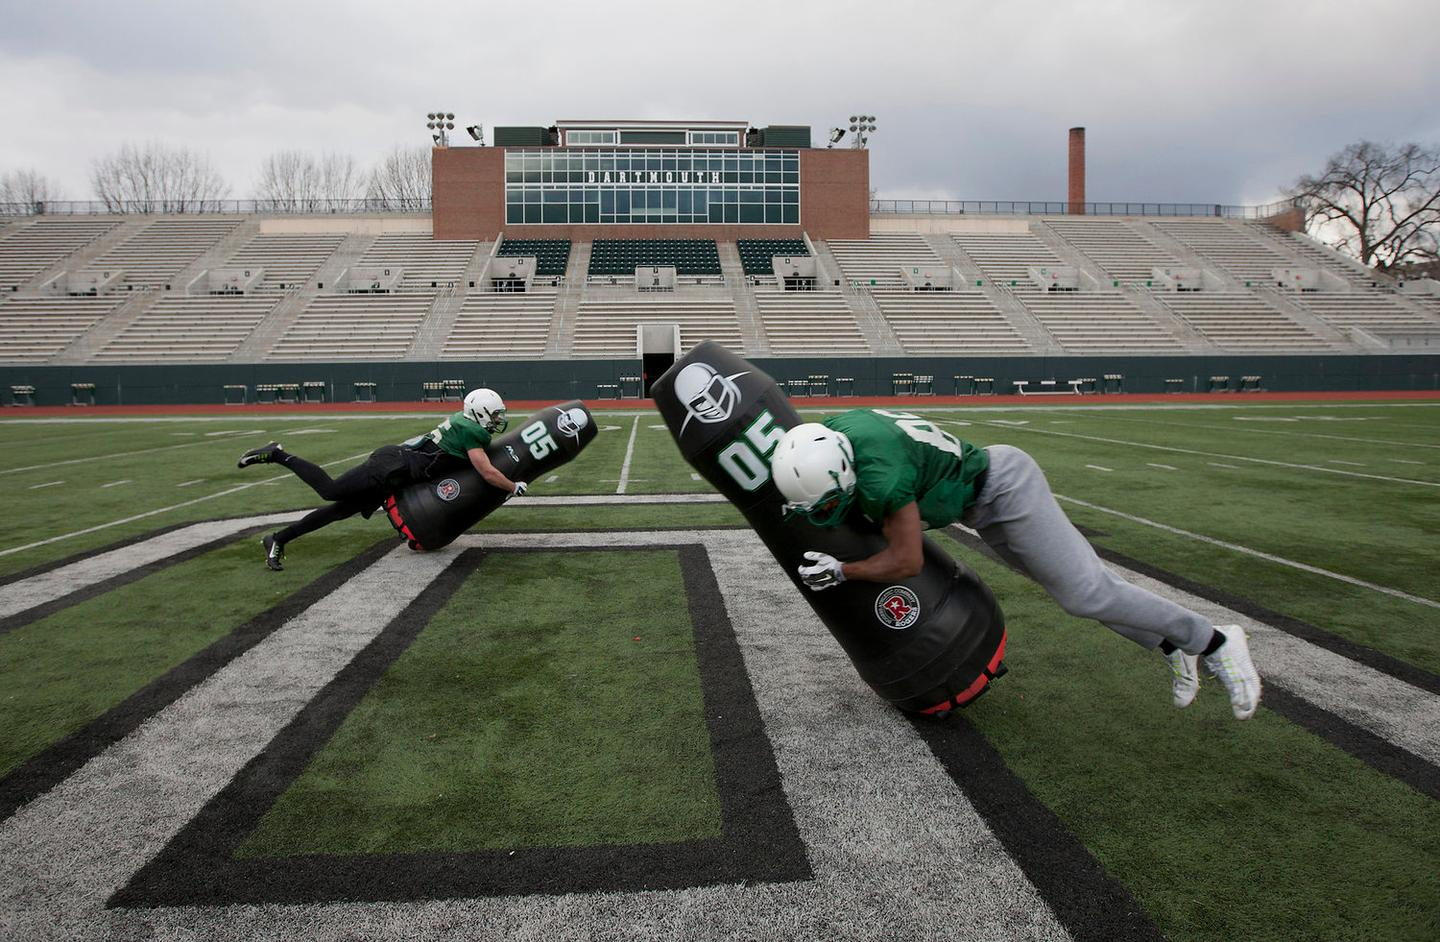 The MVP robot allows footballers to train with less risk of injury